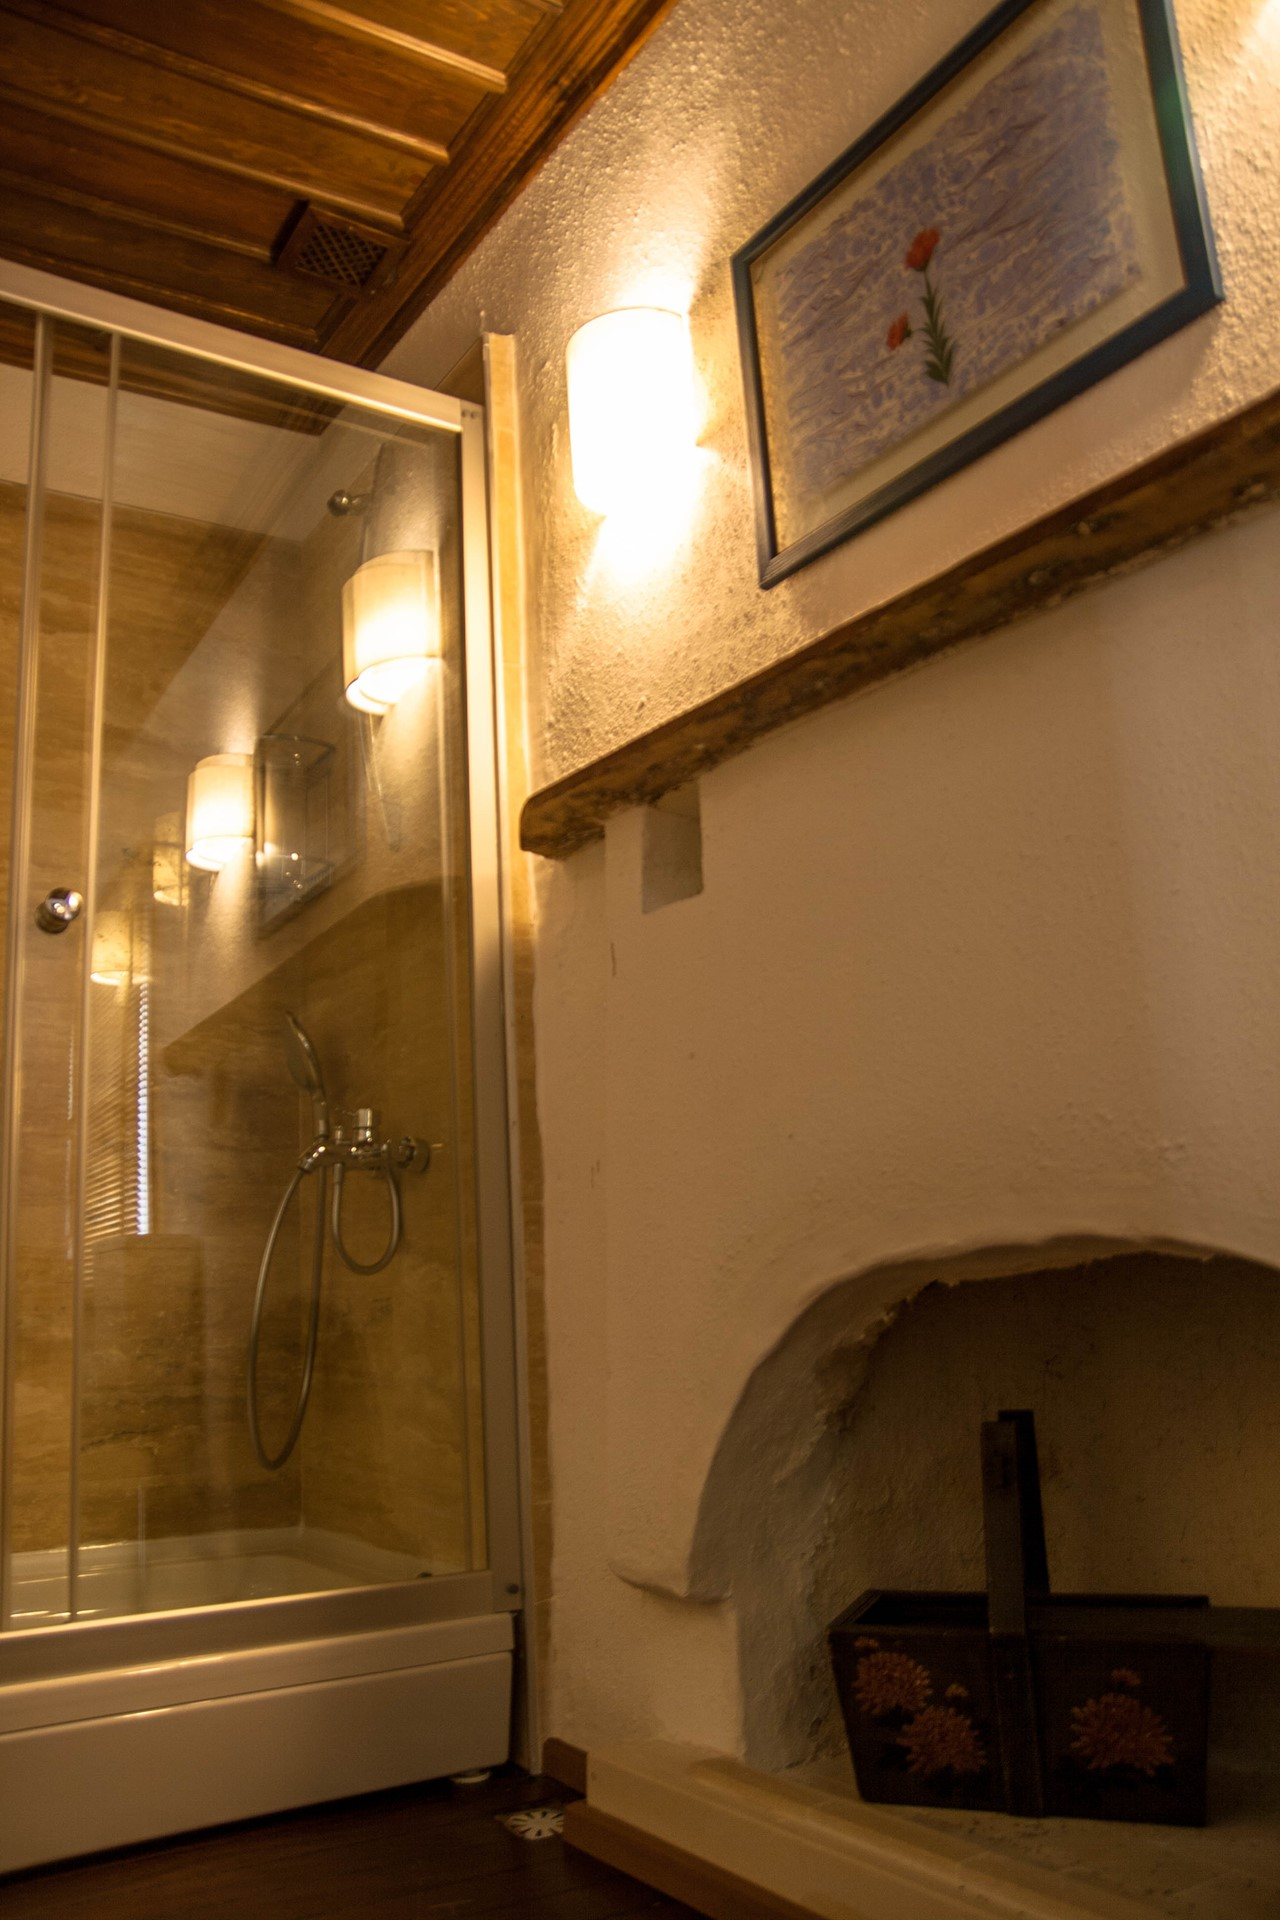 Contemporary bathrooms with character